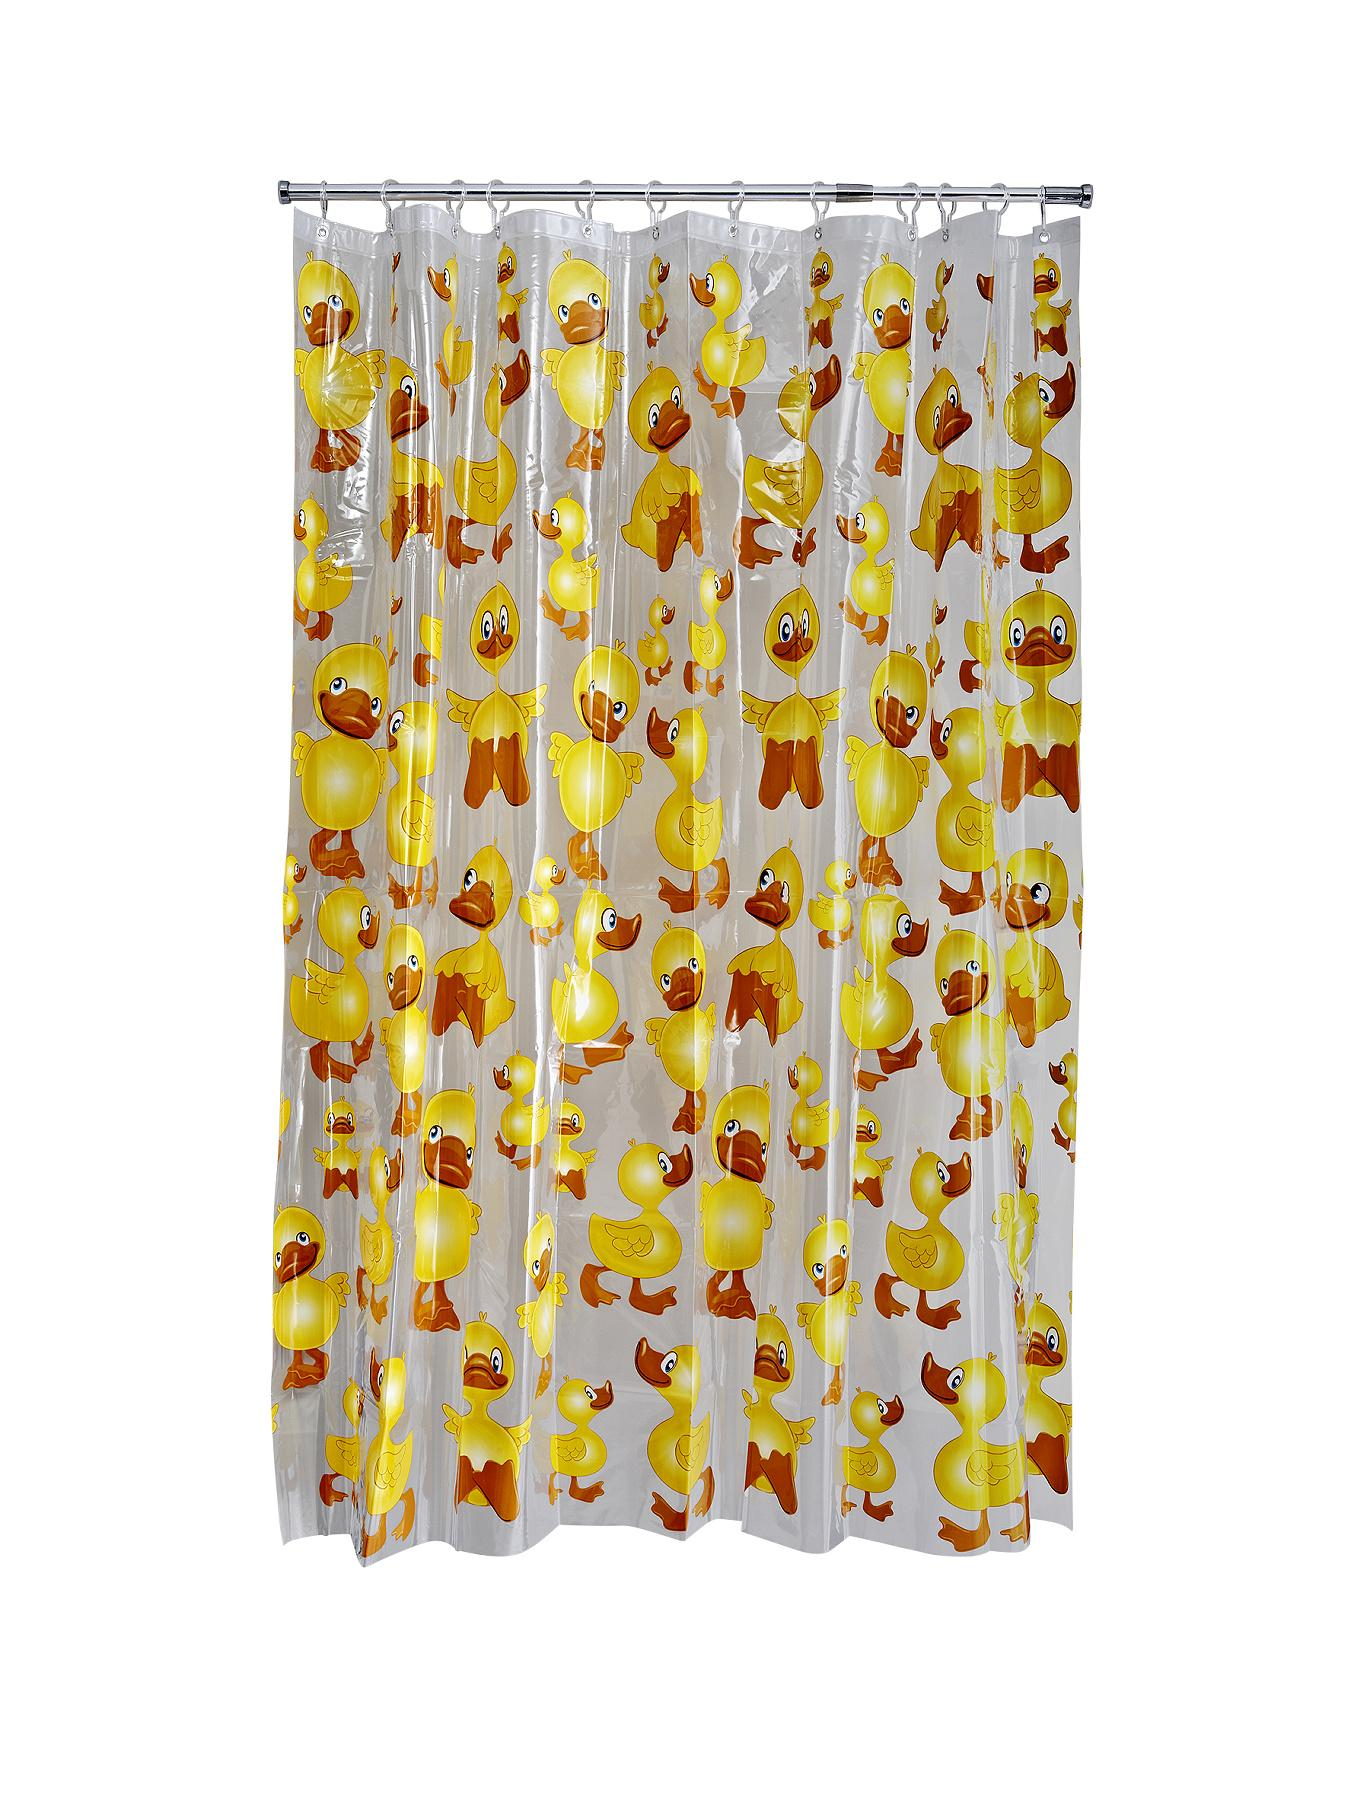 Cheeky Duck Shower Curtain - Multi at Littlewoods